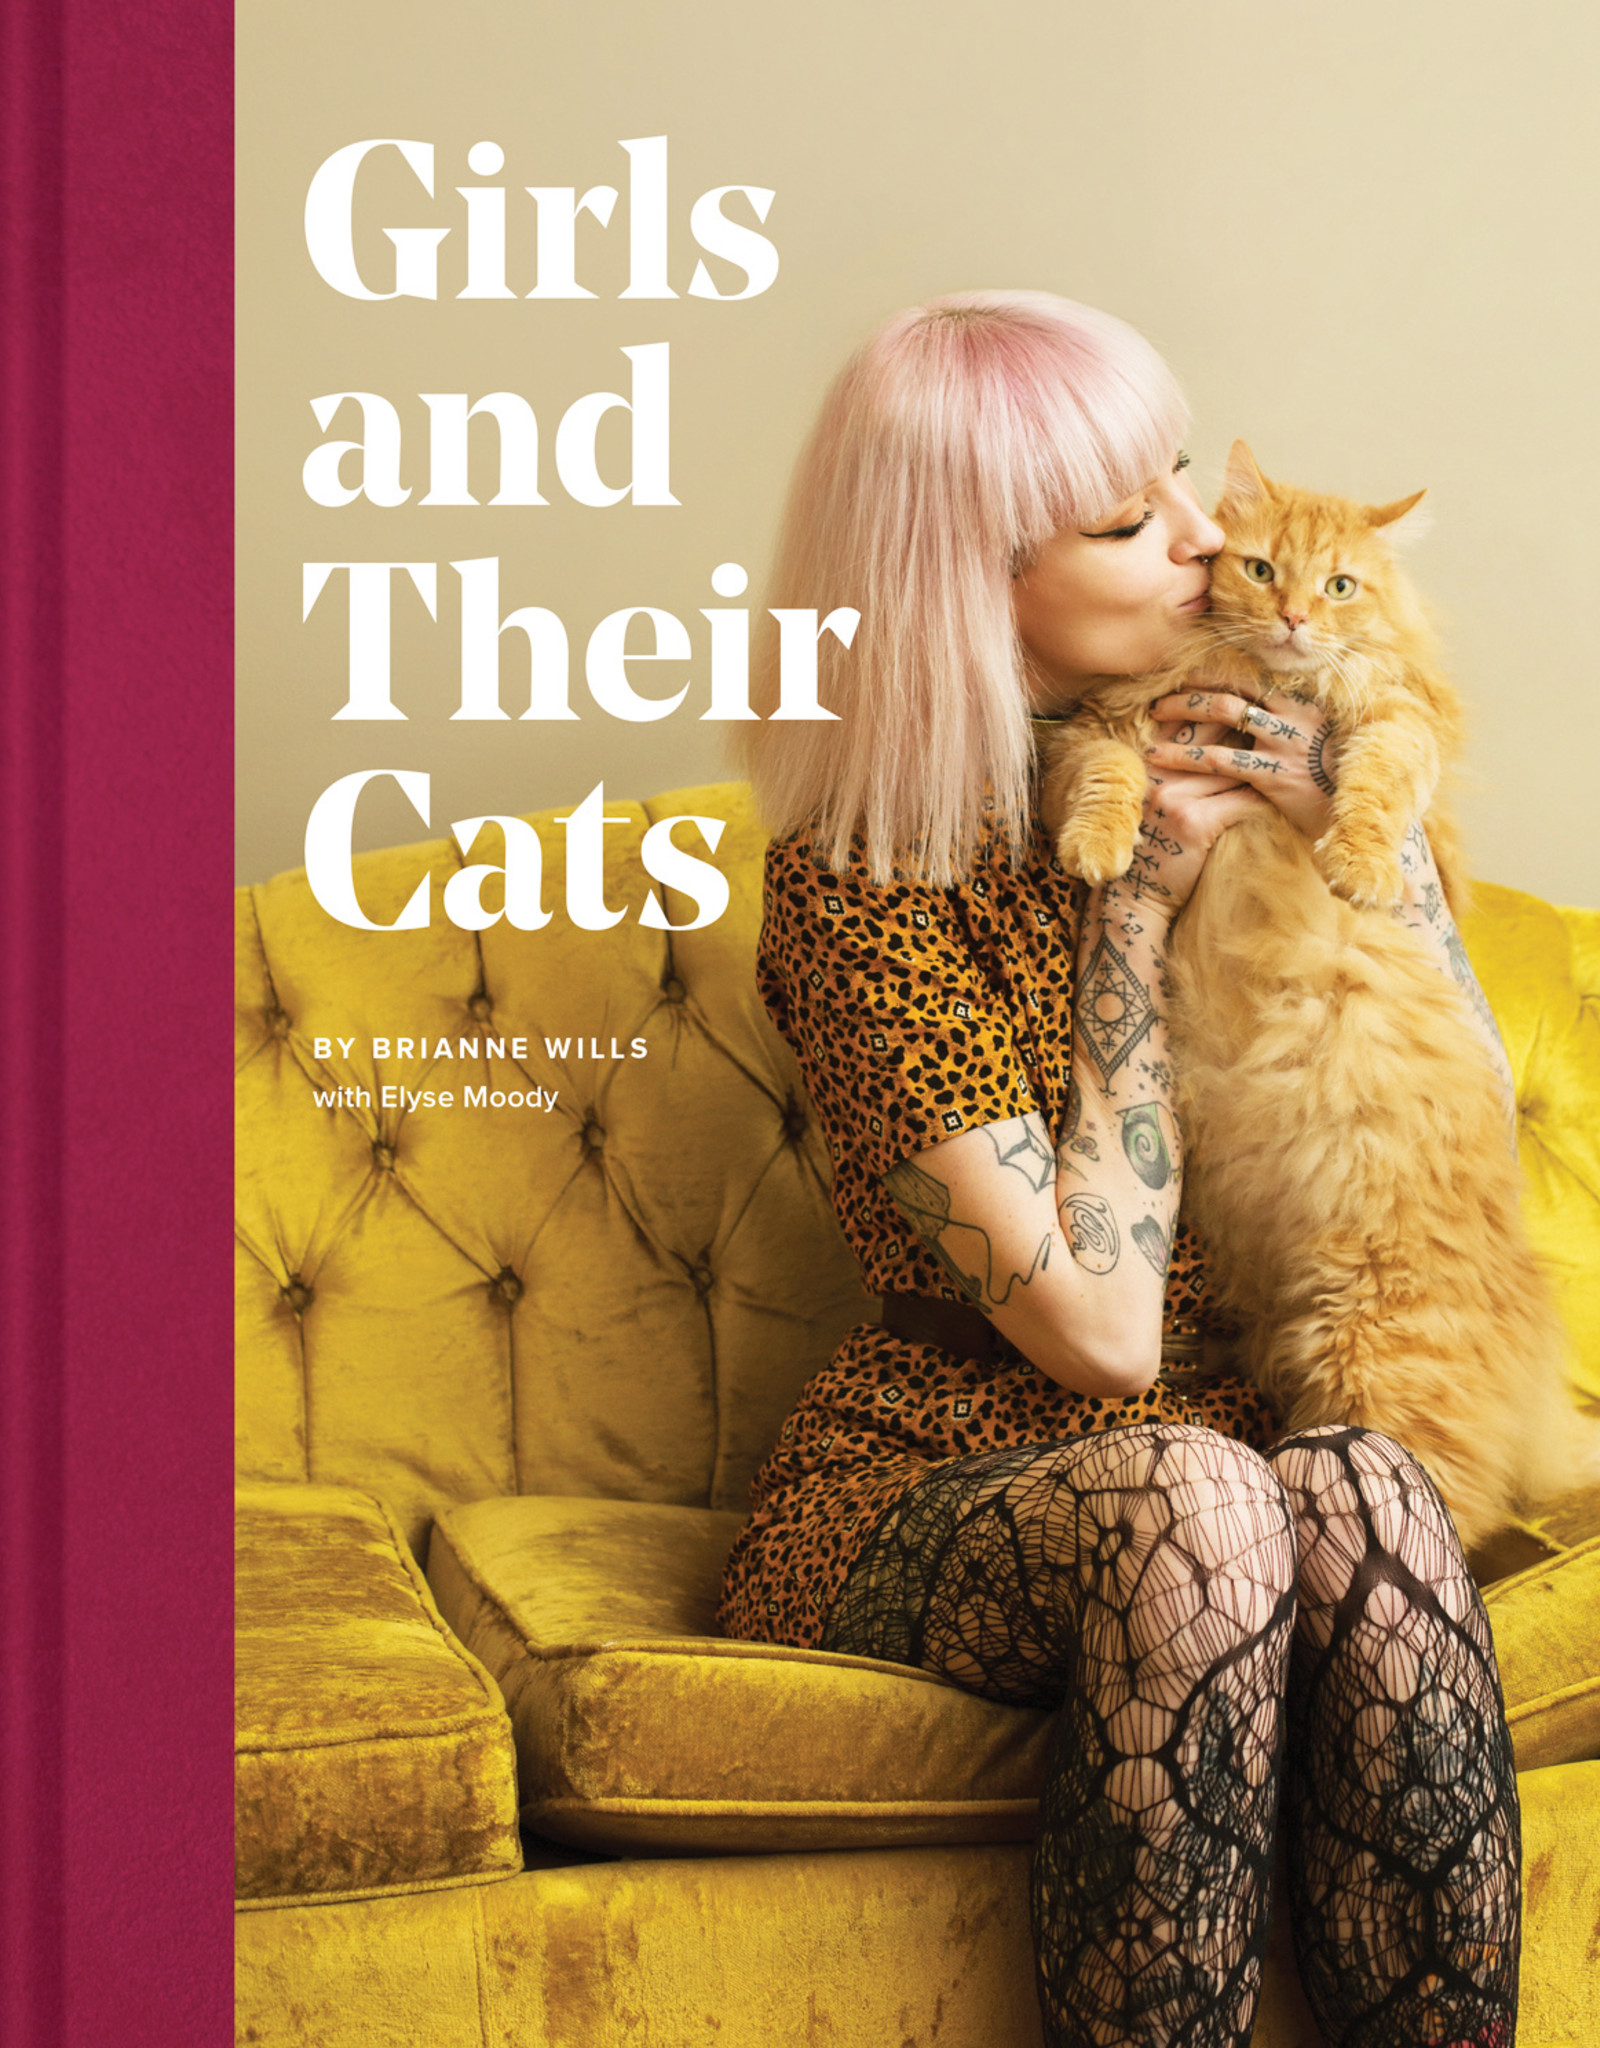 Brianne Wills Brianne Wills - Girls and their cats